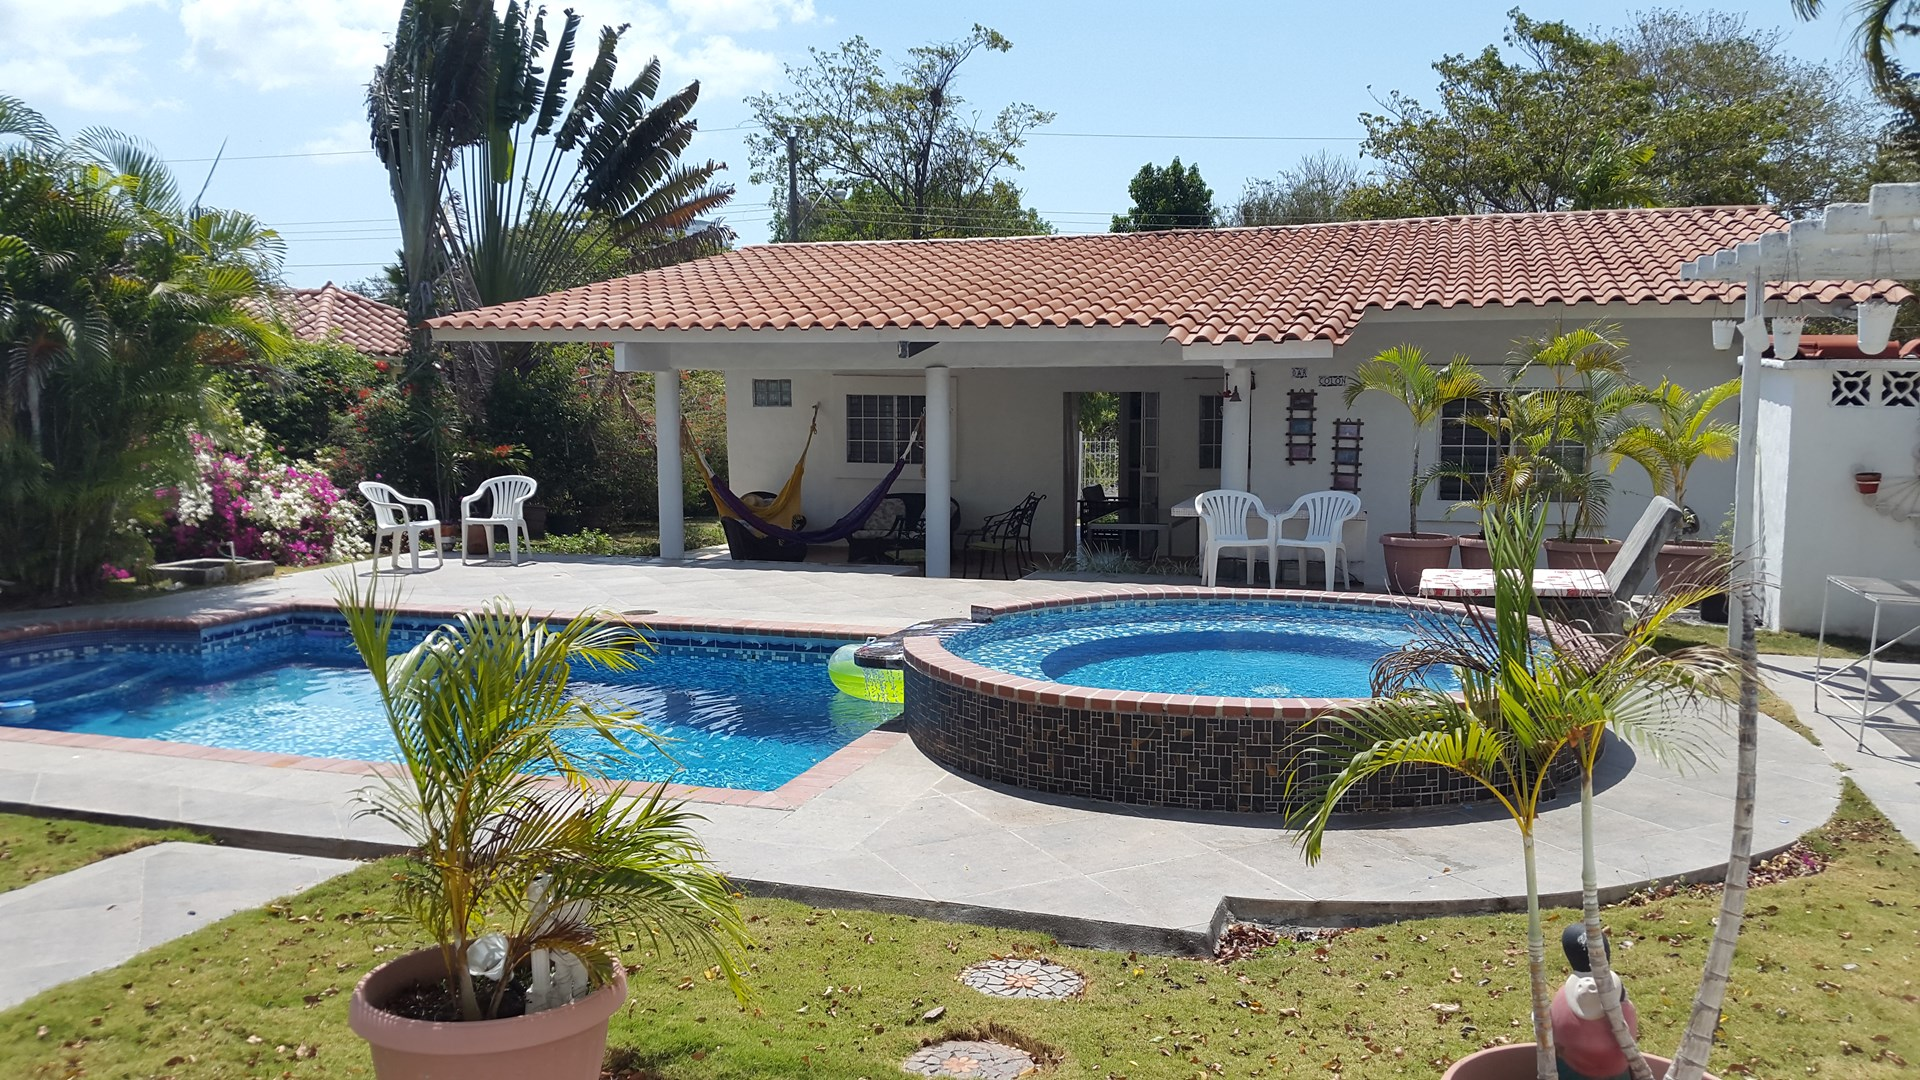 HOUSE IN CORONADO FOR RENT In PANAMA